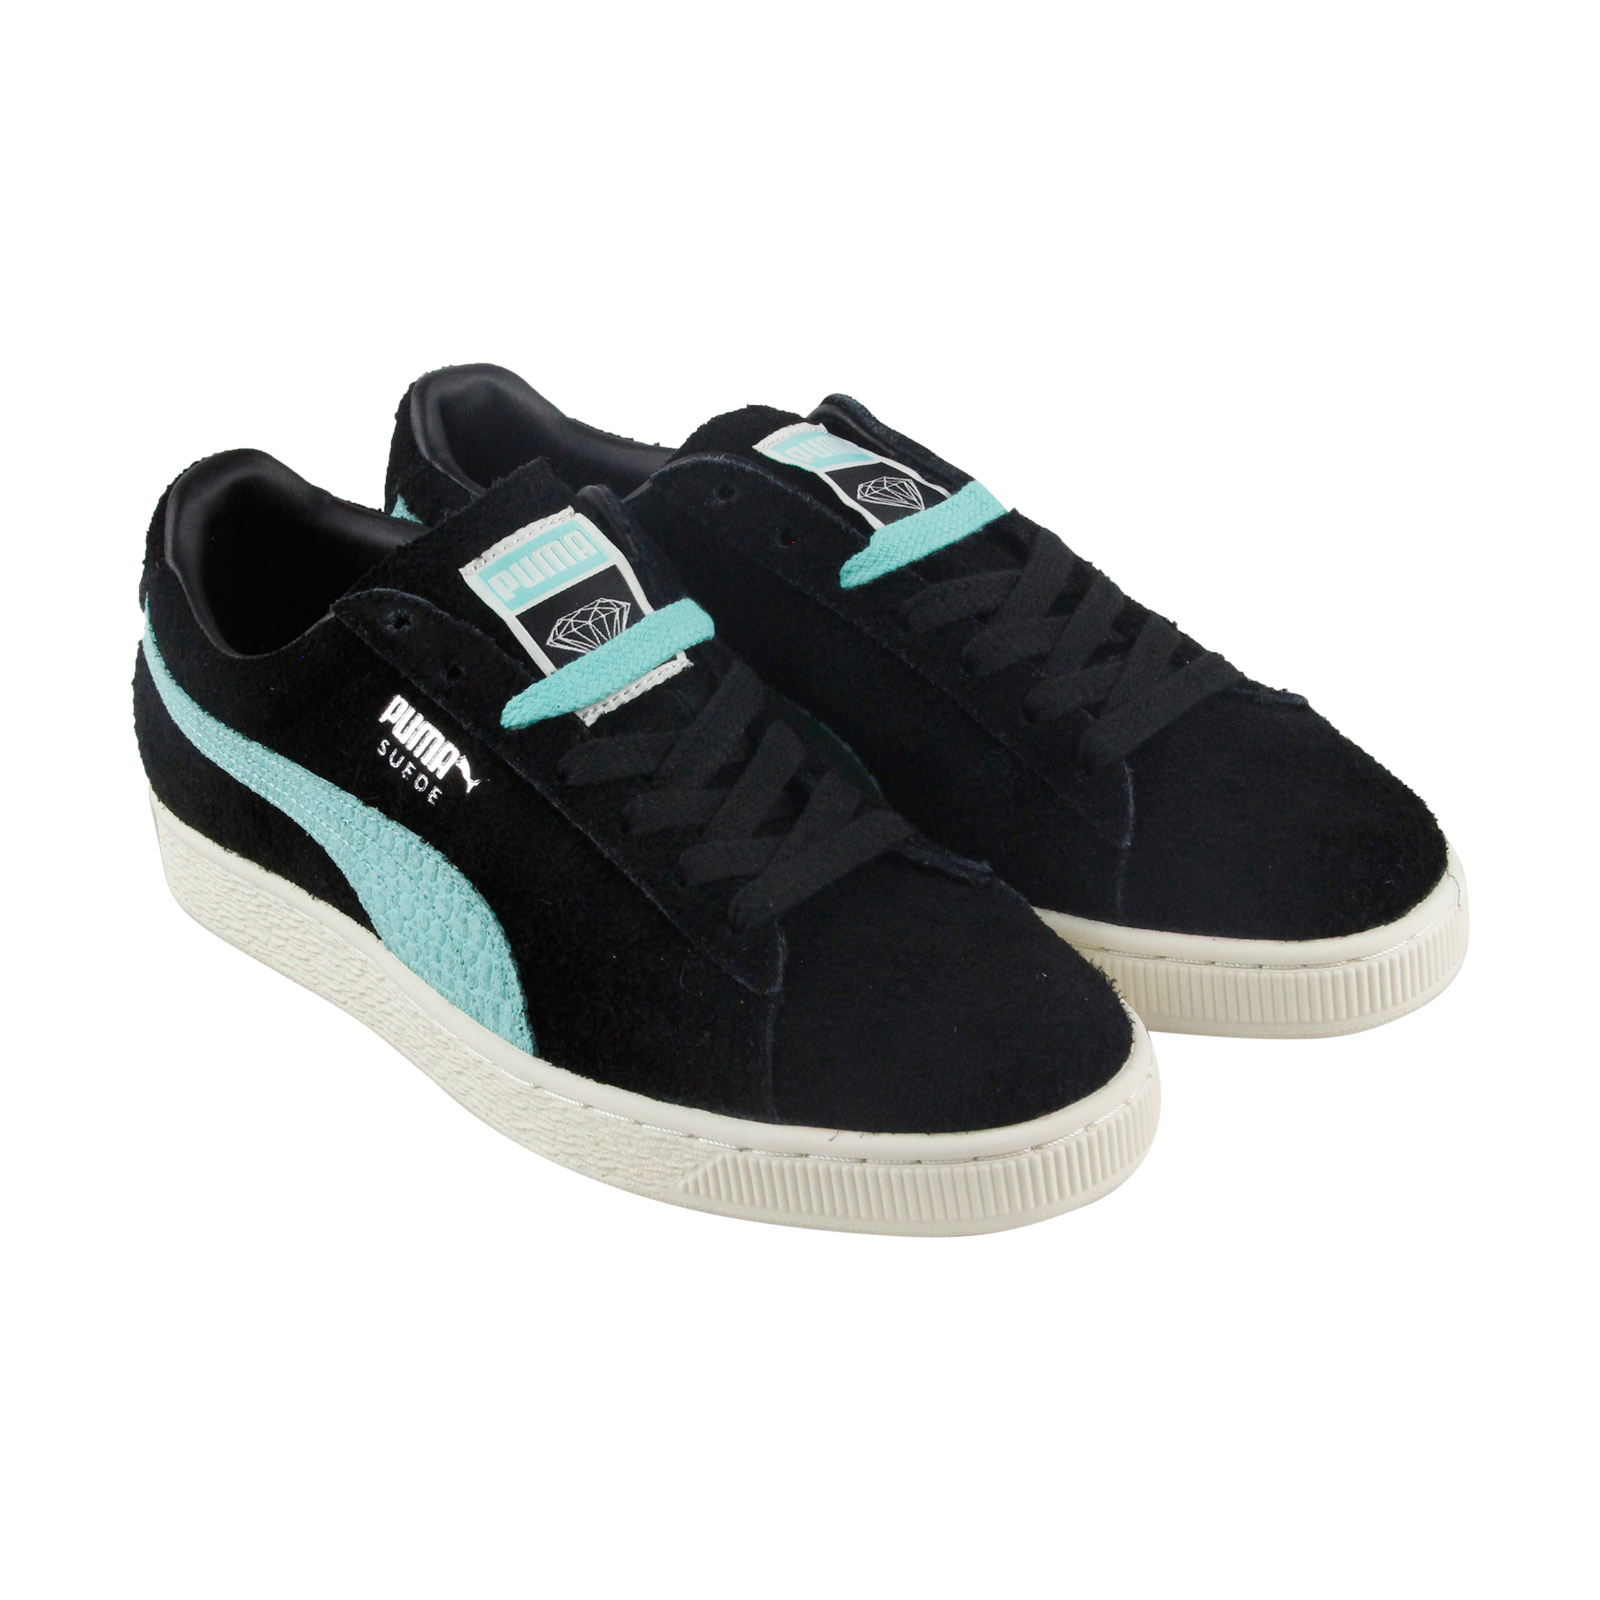 Sneakers Diamond Top Low Mens X Lace Black Puma Shoes Suede Up sdhQrCotxB